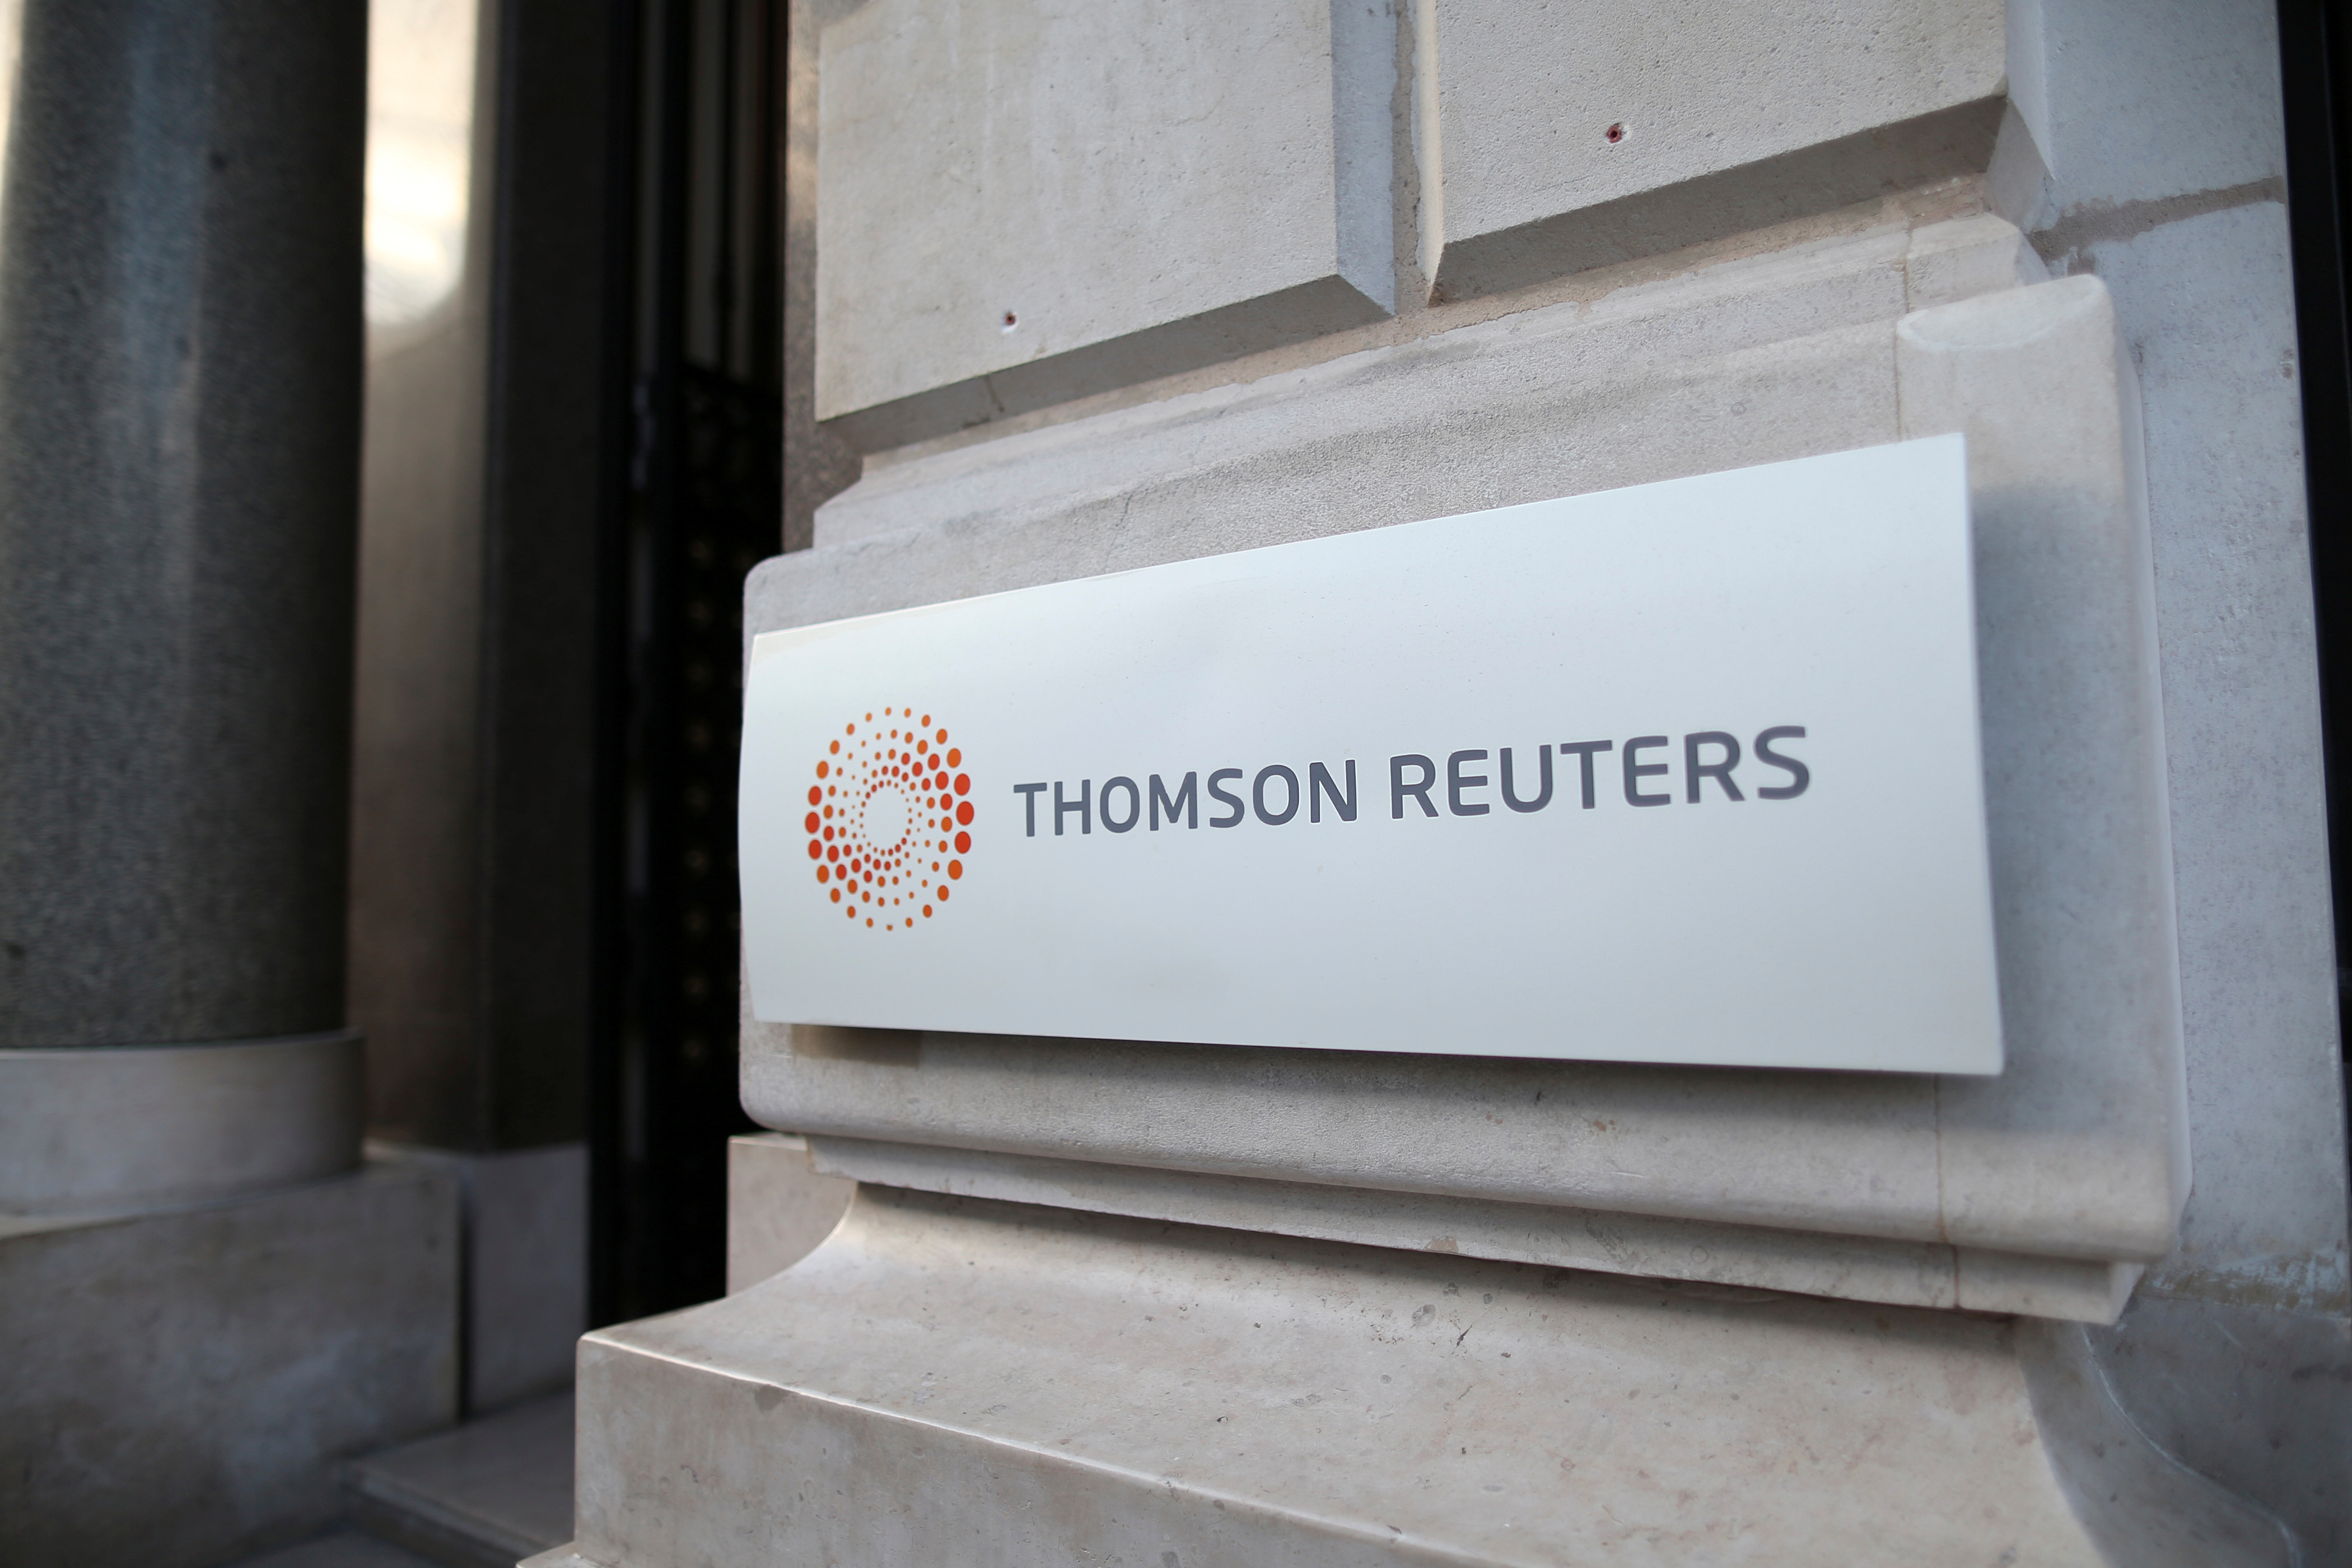 The logo of Thomson Reuters is pictured at the entrance of its Paris headquarters, France, March 7, 2016.   REUTERS/Charles Platiau